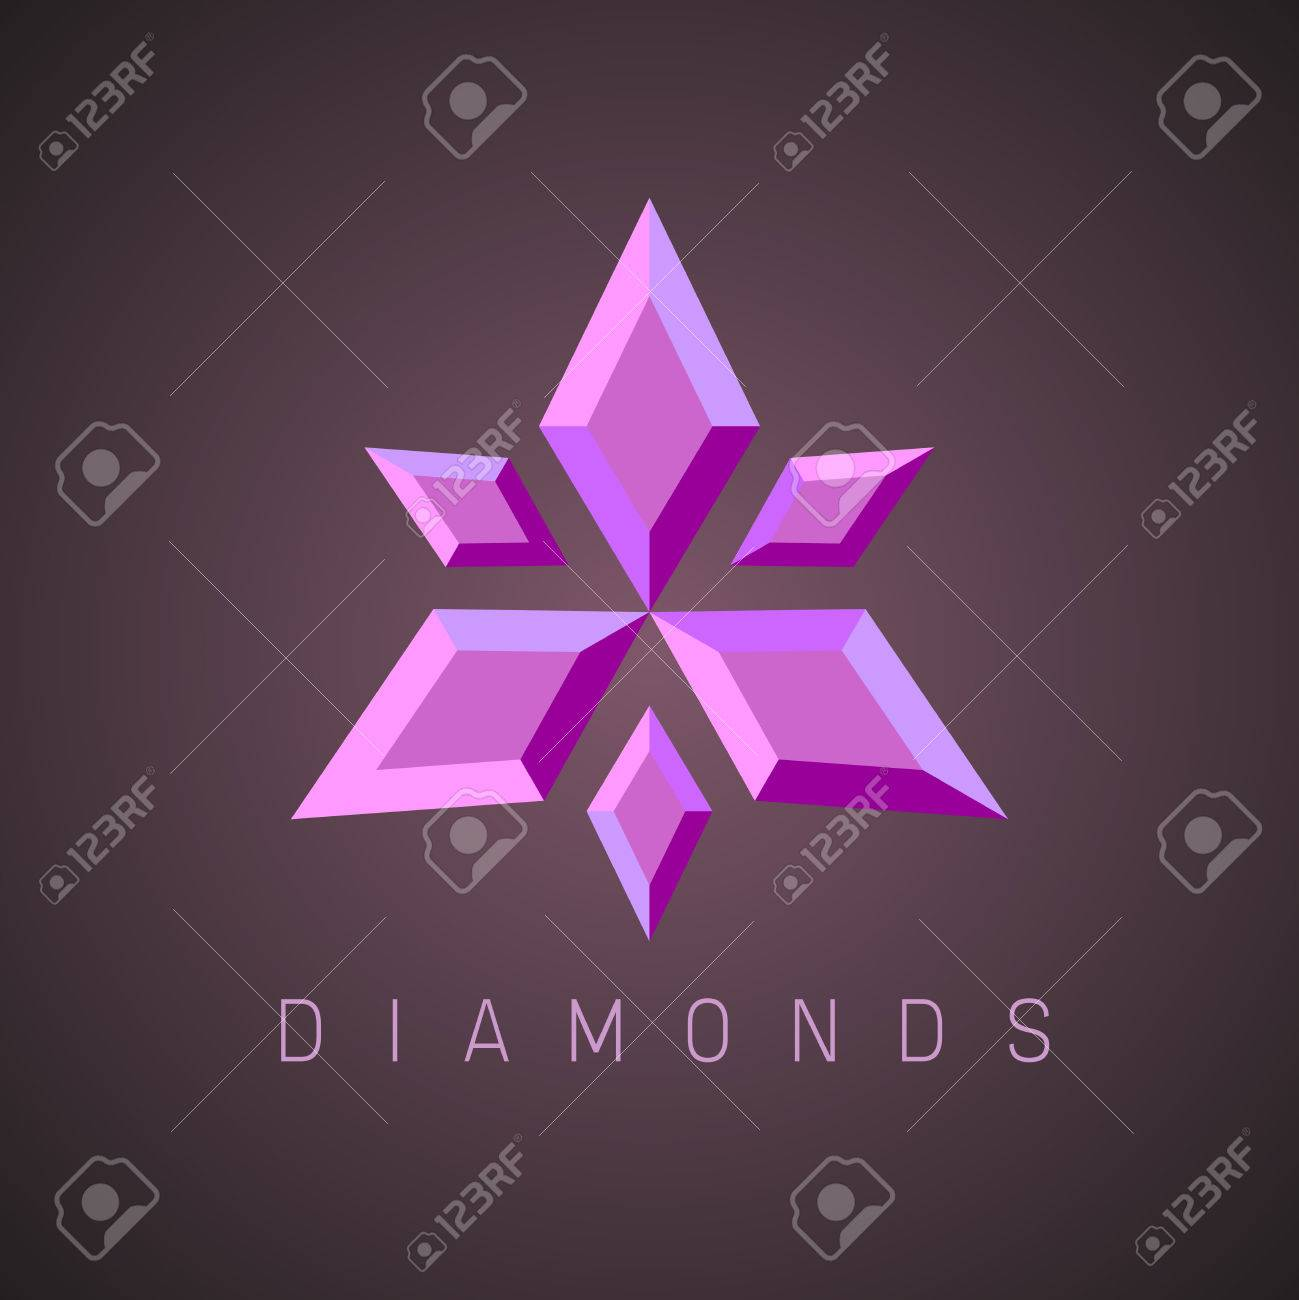 Ruby Gems Logo Template Royalty Free Cliparts, Vectors, And Stock ...